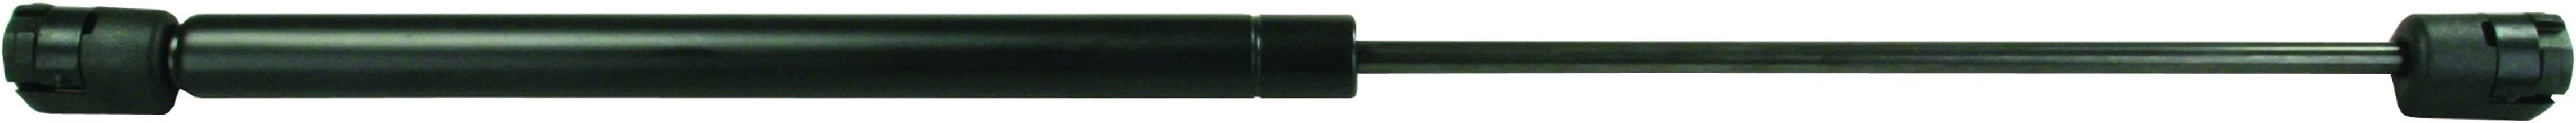 JR Products GSNI-5100-40 Gas Spring